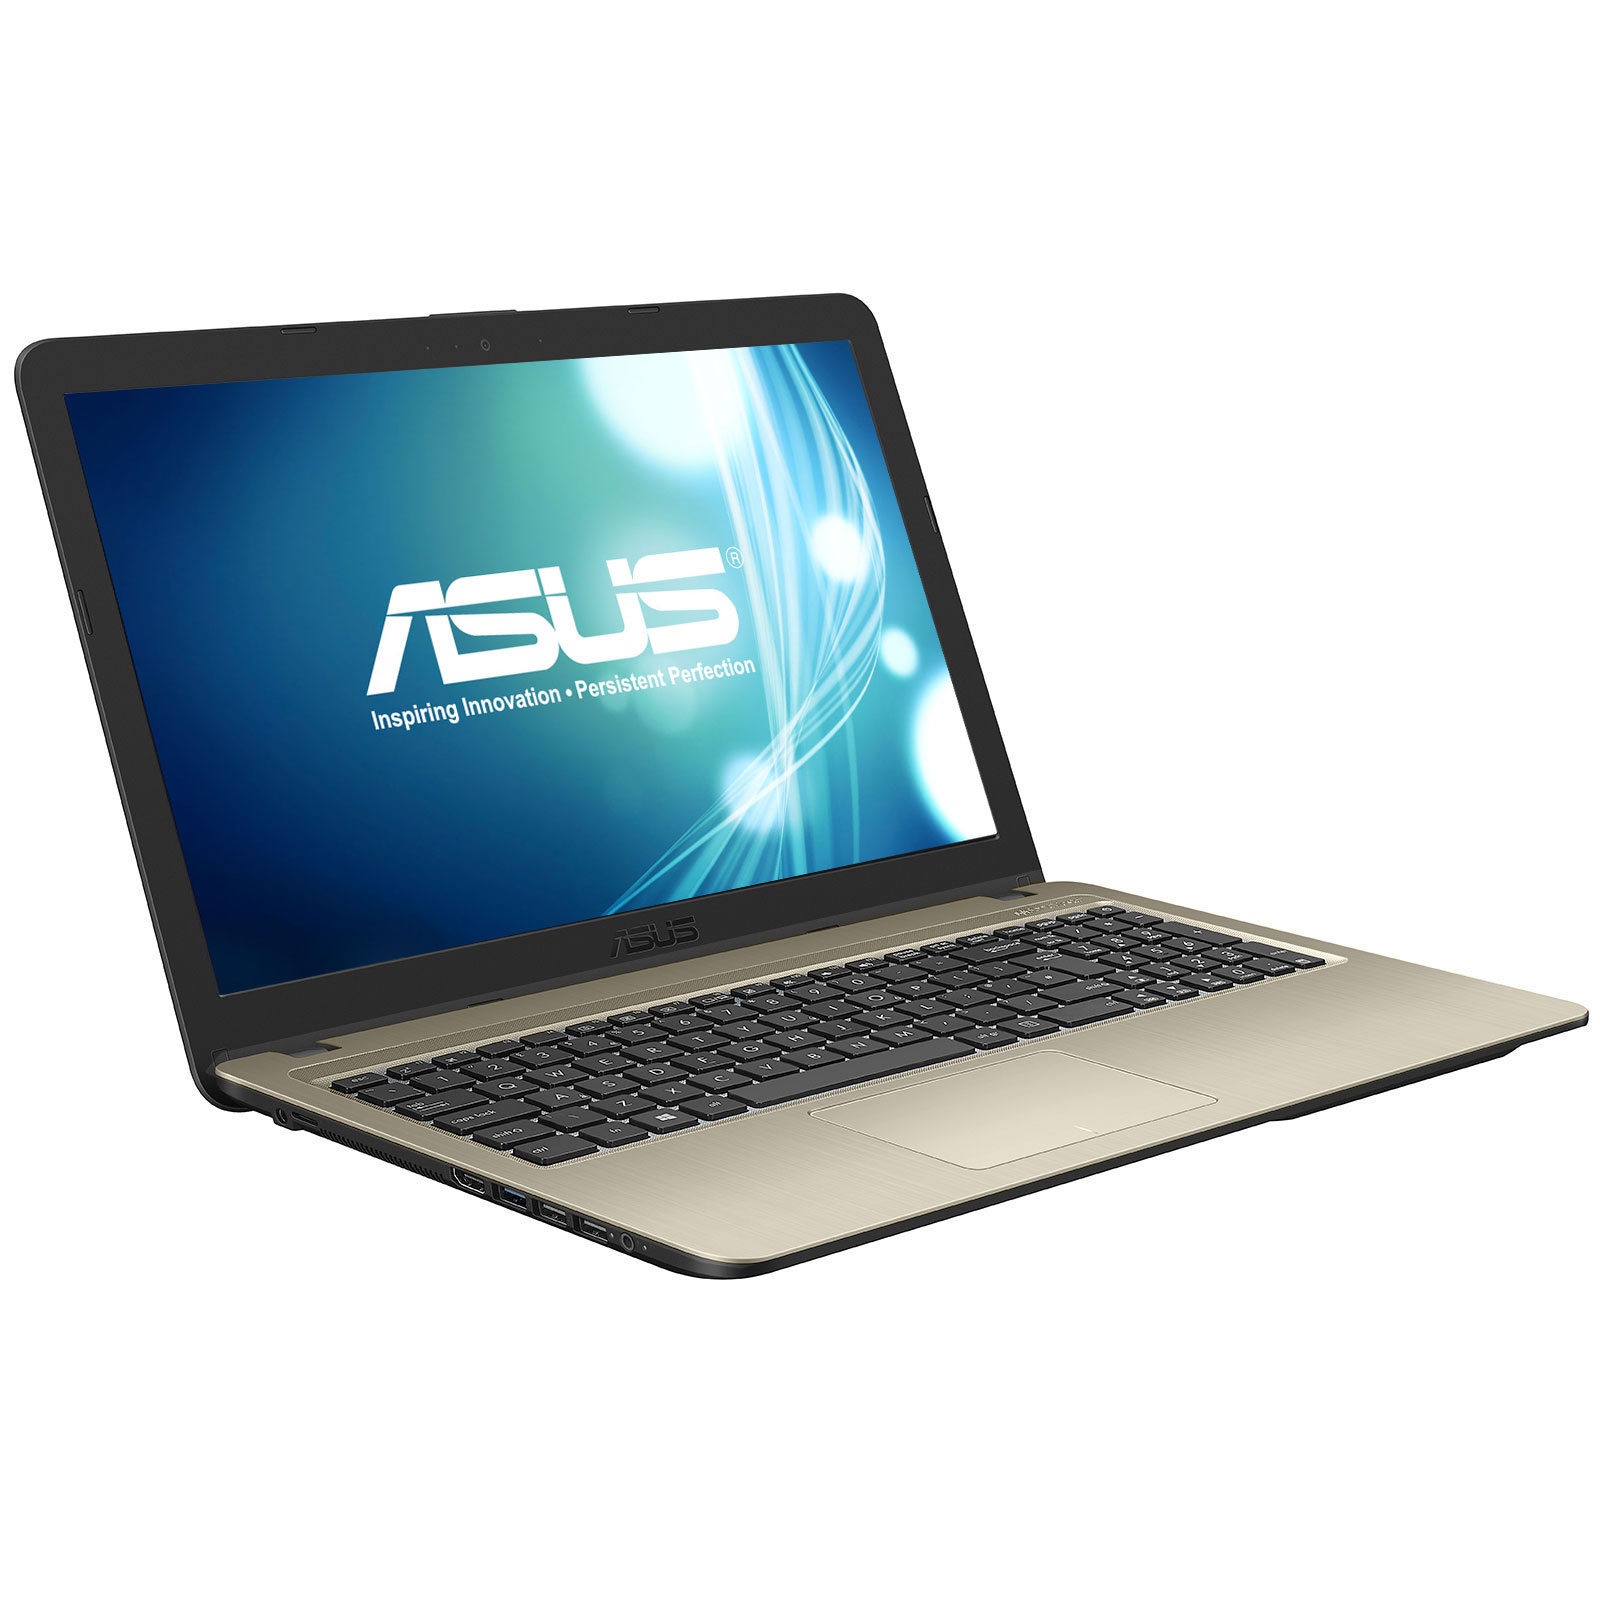 "PC portable ASUS R540UA-DM494 Intel Core i3-6006U 4 Go SSD 256 Go 15.6"" LED Full HD Wi-Fi AC/Bluetooth Webcam Endless OS"